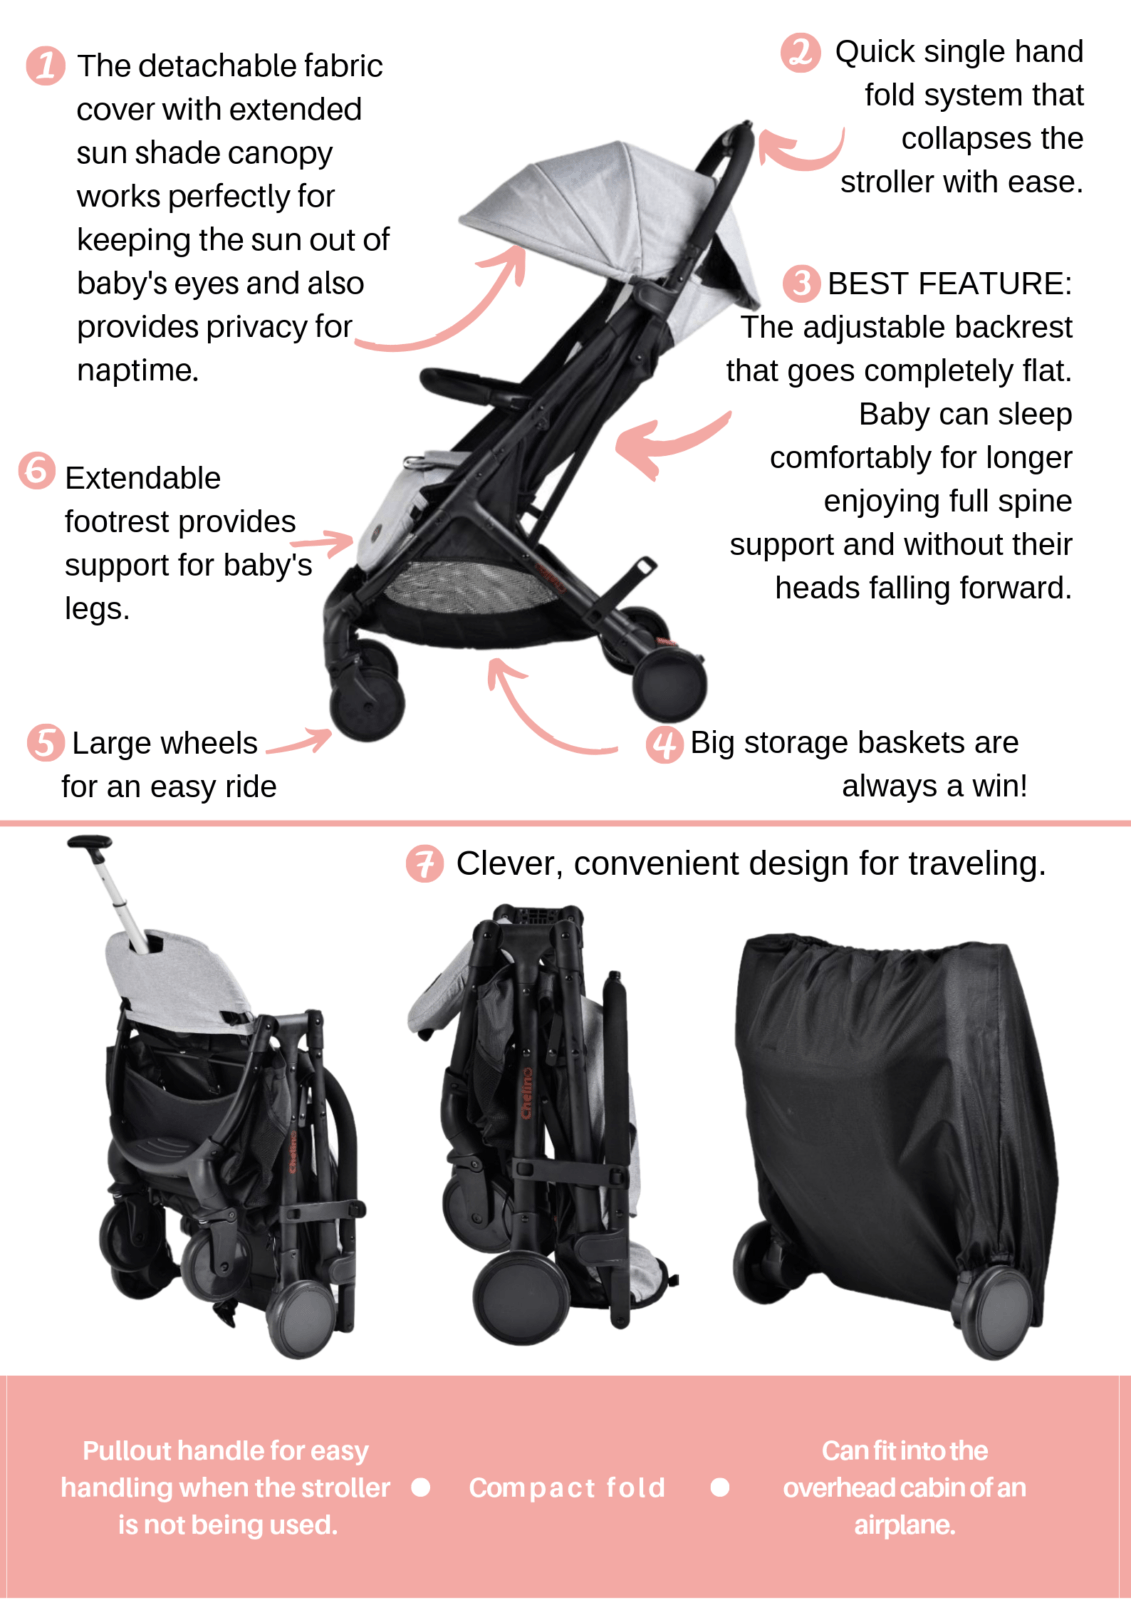 Travel-Buddy-stroller-key-features